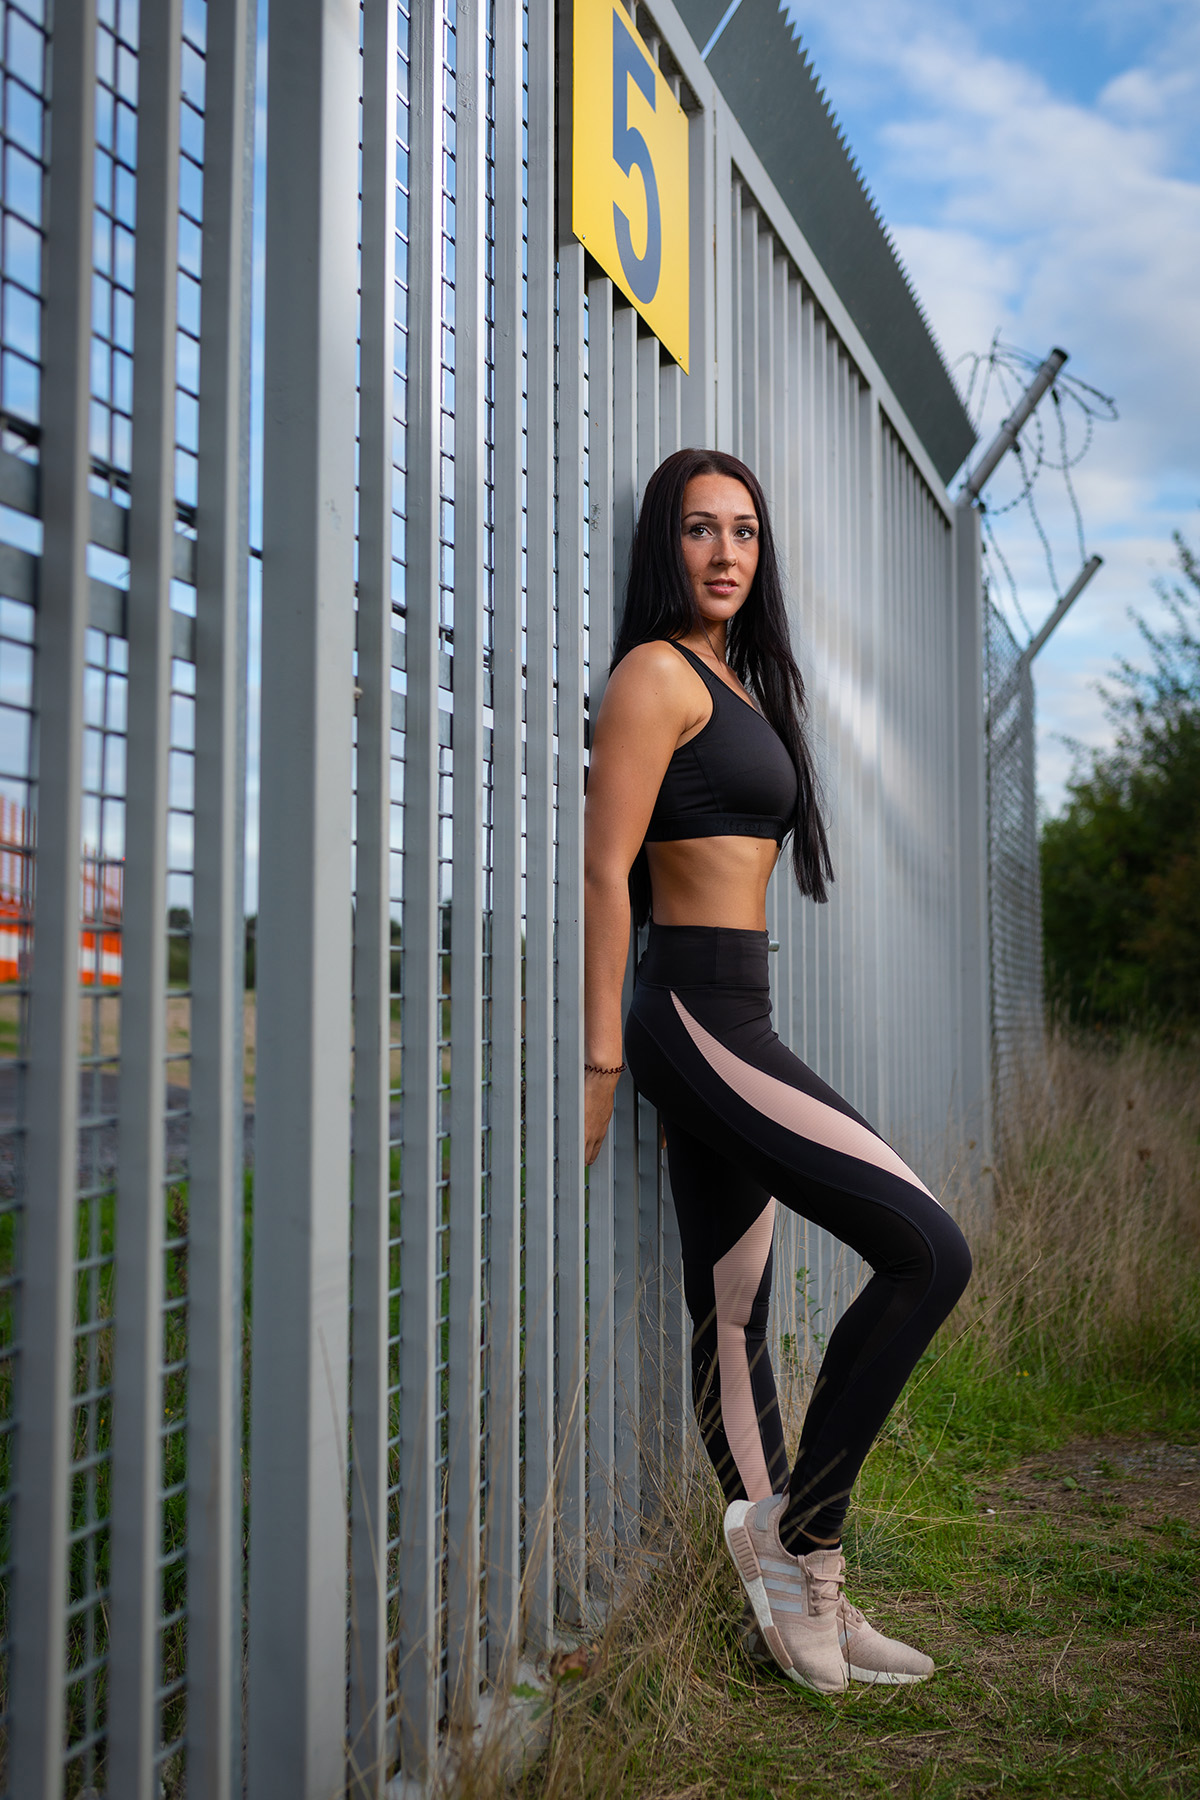 Model; Shooting; Fashion; Outdoor; Fitness